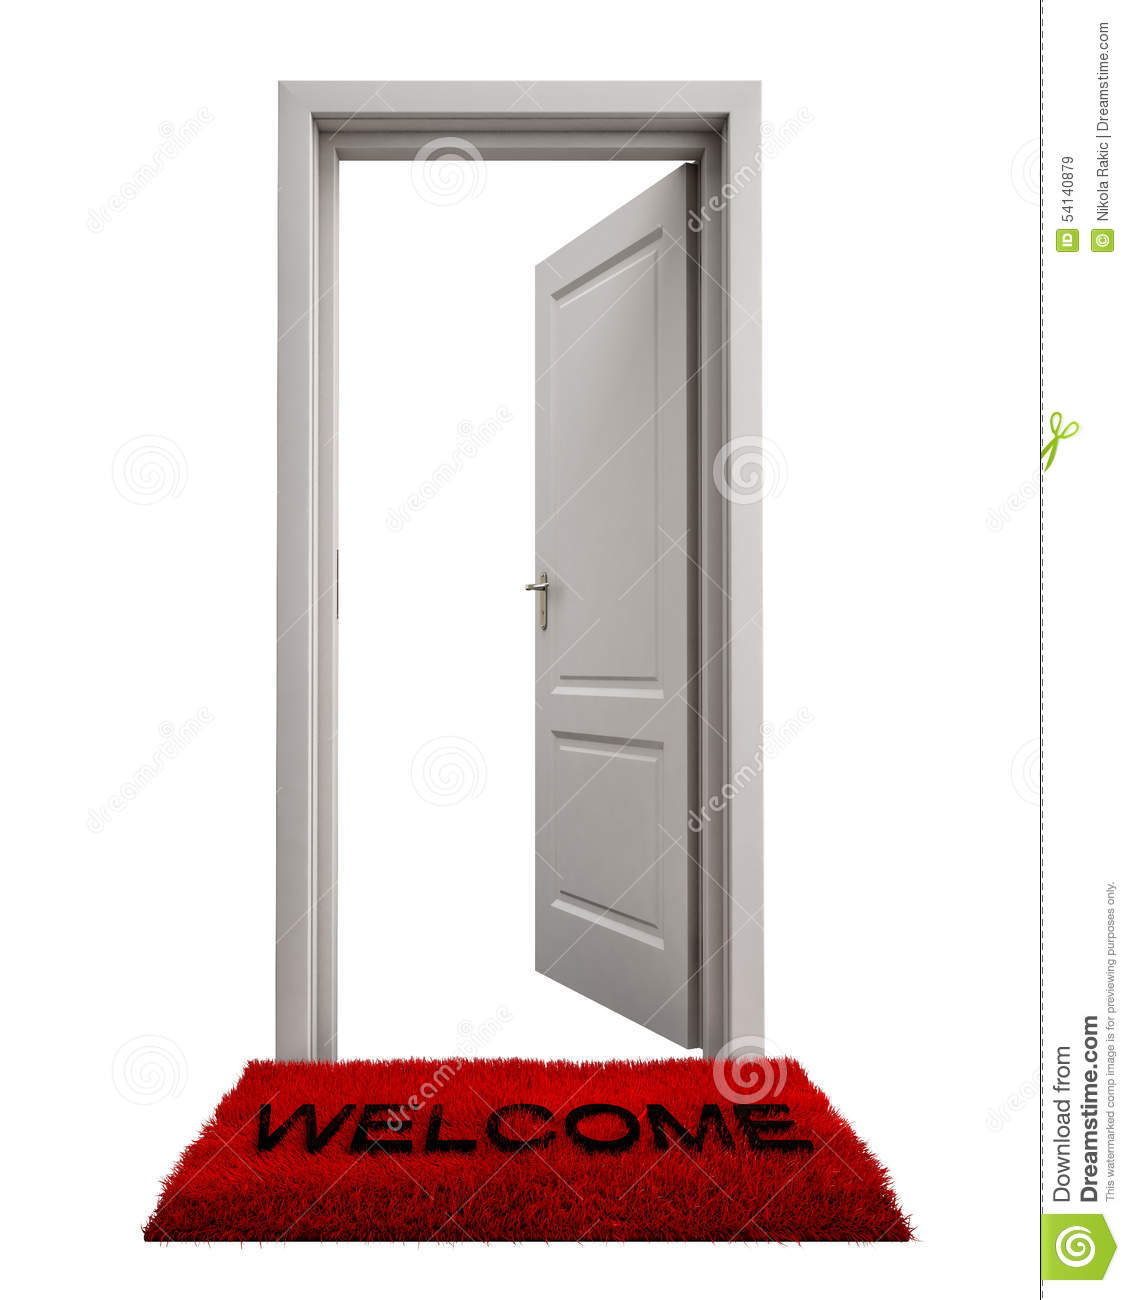 Open closed door clipart - Open Door With Welcome Mat Isolated On White Background